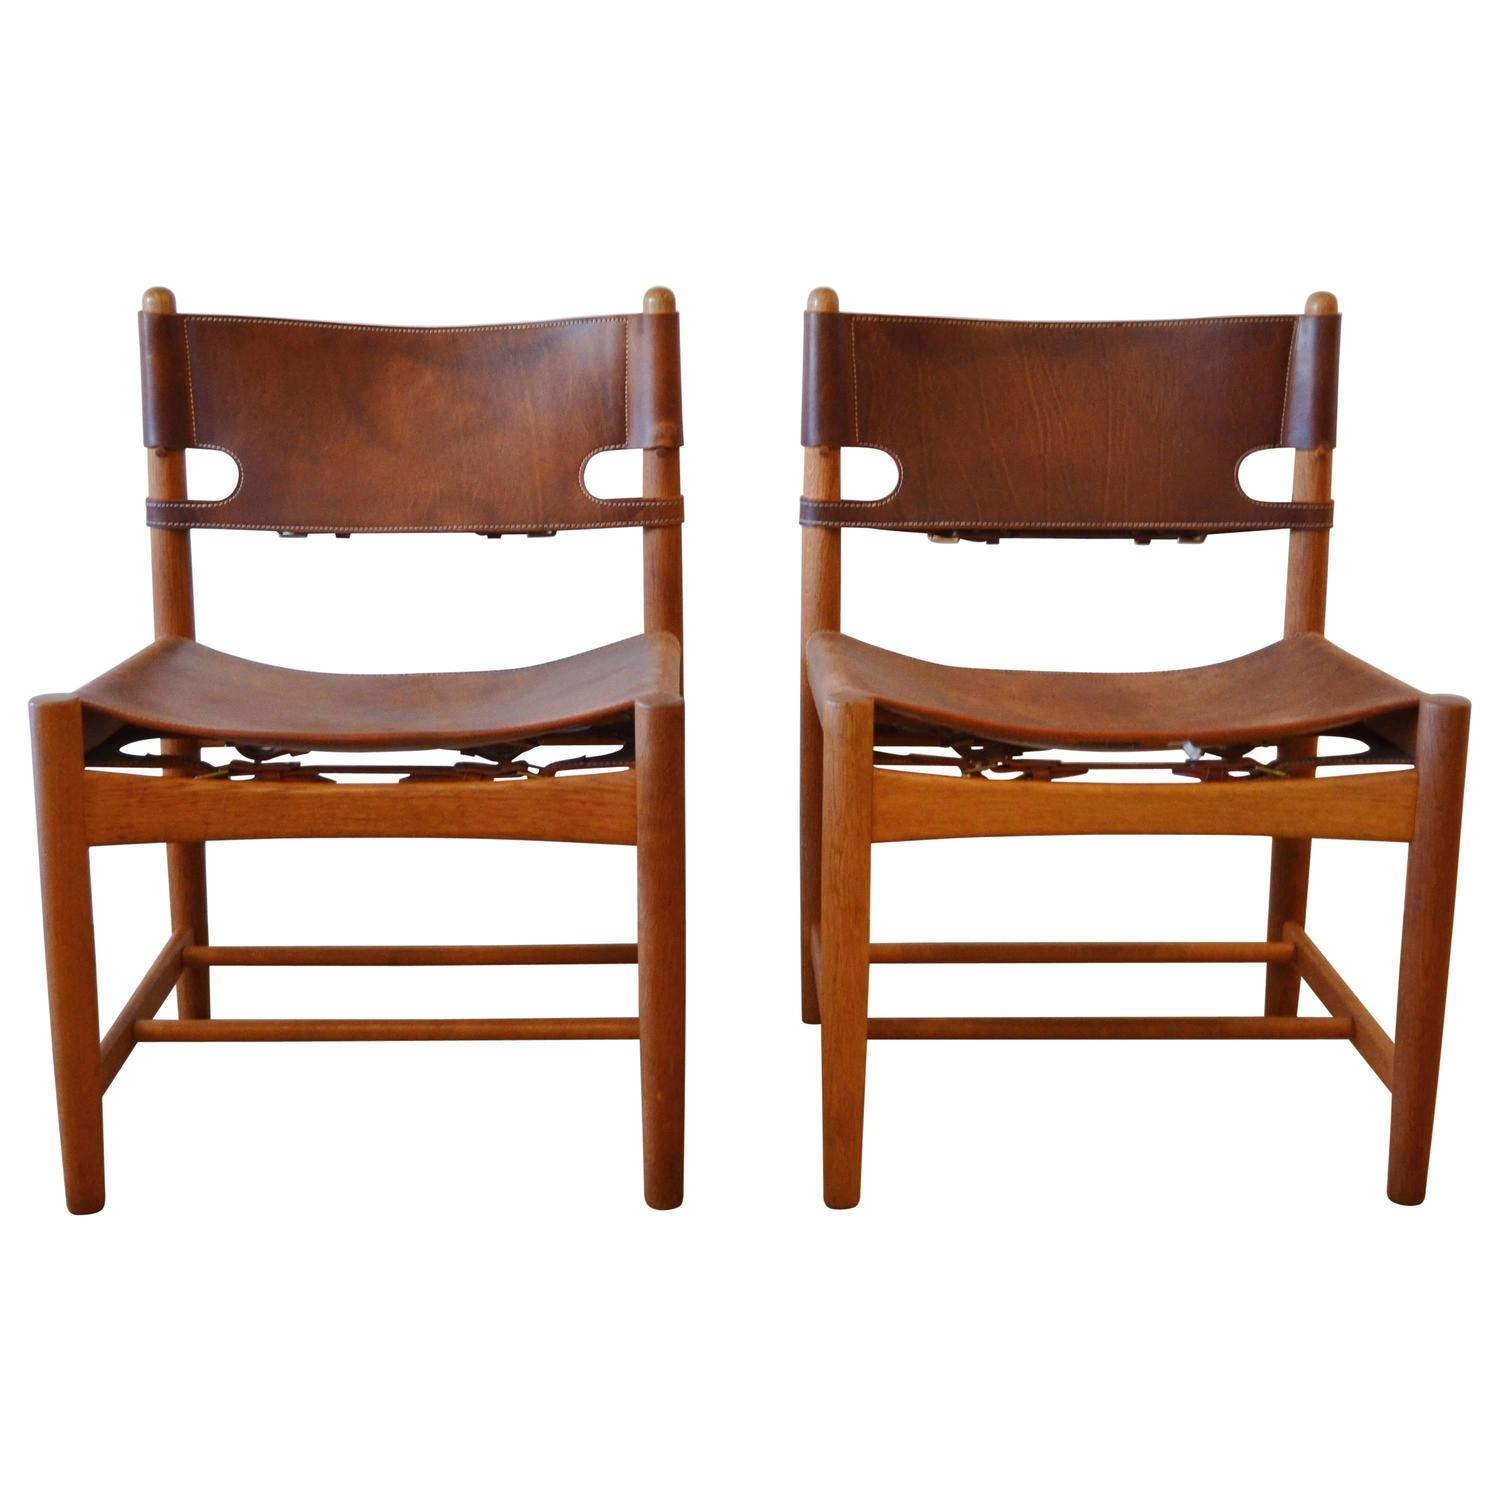 Of four chairs in oak and patinated cognac leather for sale at 1stdibs - Pair Of B Rge Mogensen Leather Hunting Chairs Model 3237